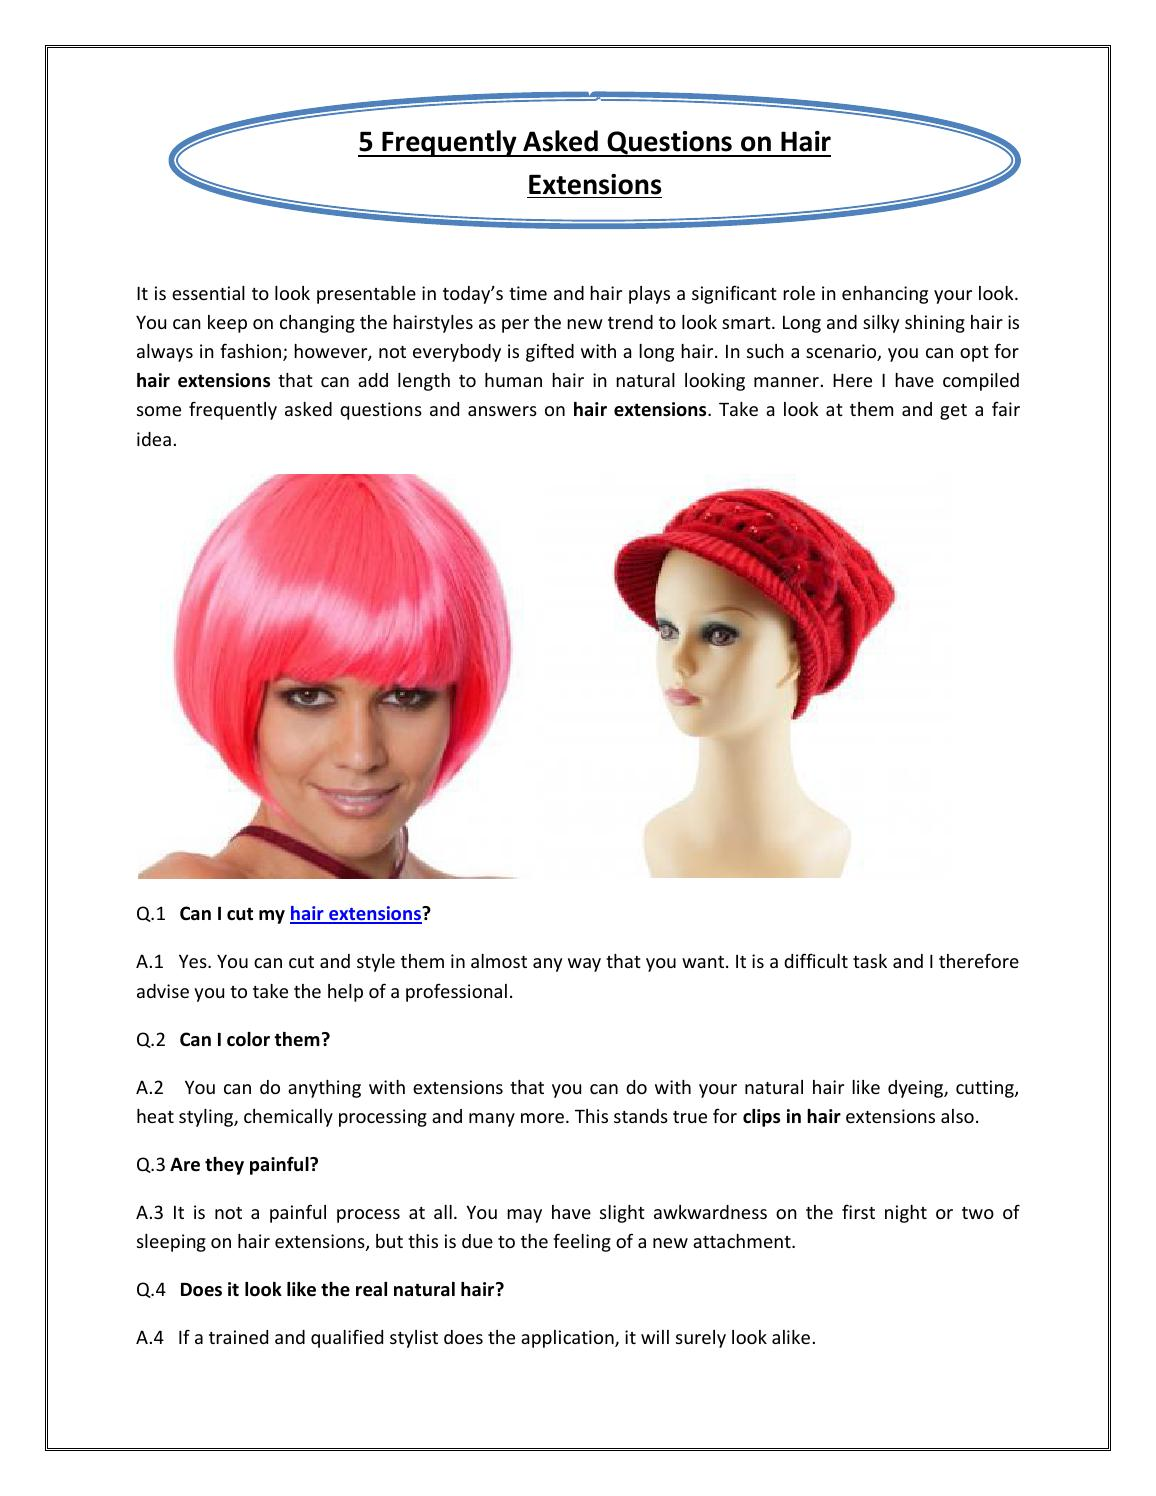 5 Frequently Asked Questions On Hair Extensions By Curly Sues Issuu